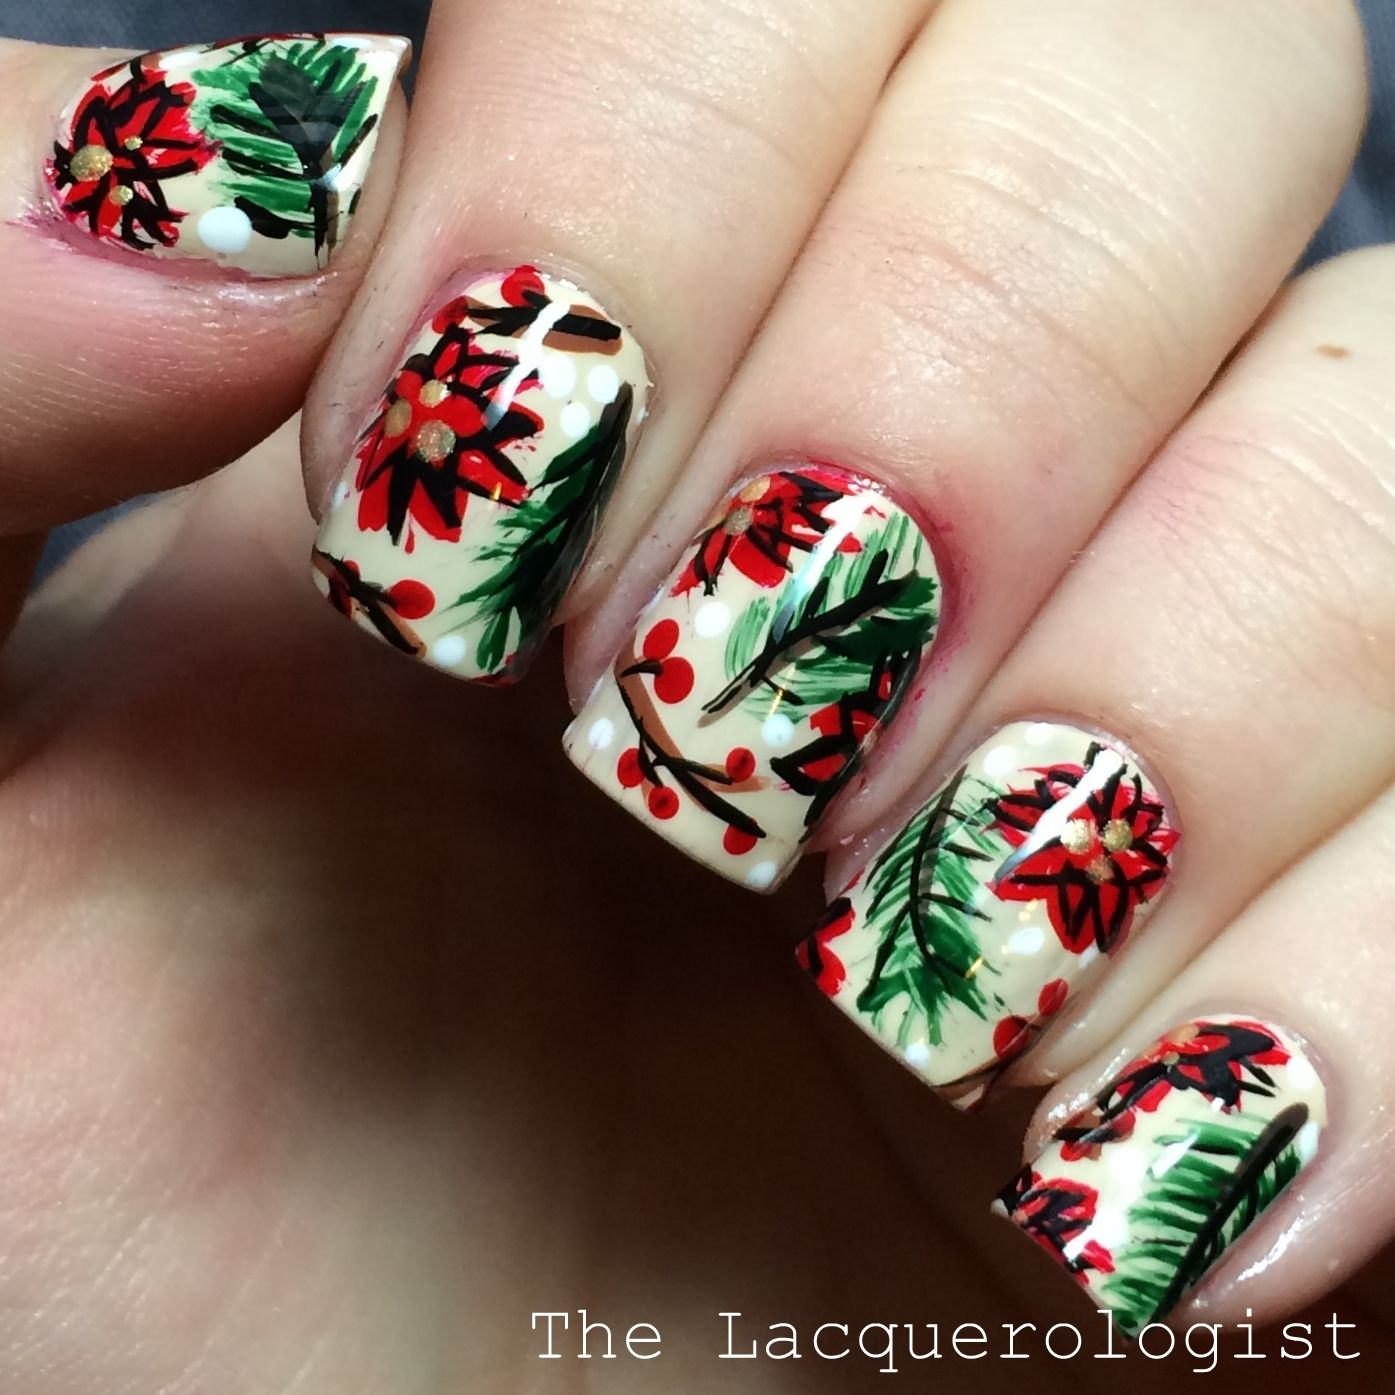 Winter Christmas Nail Designs: The Lacquerologist: Abstract Christmas Floral